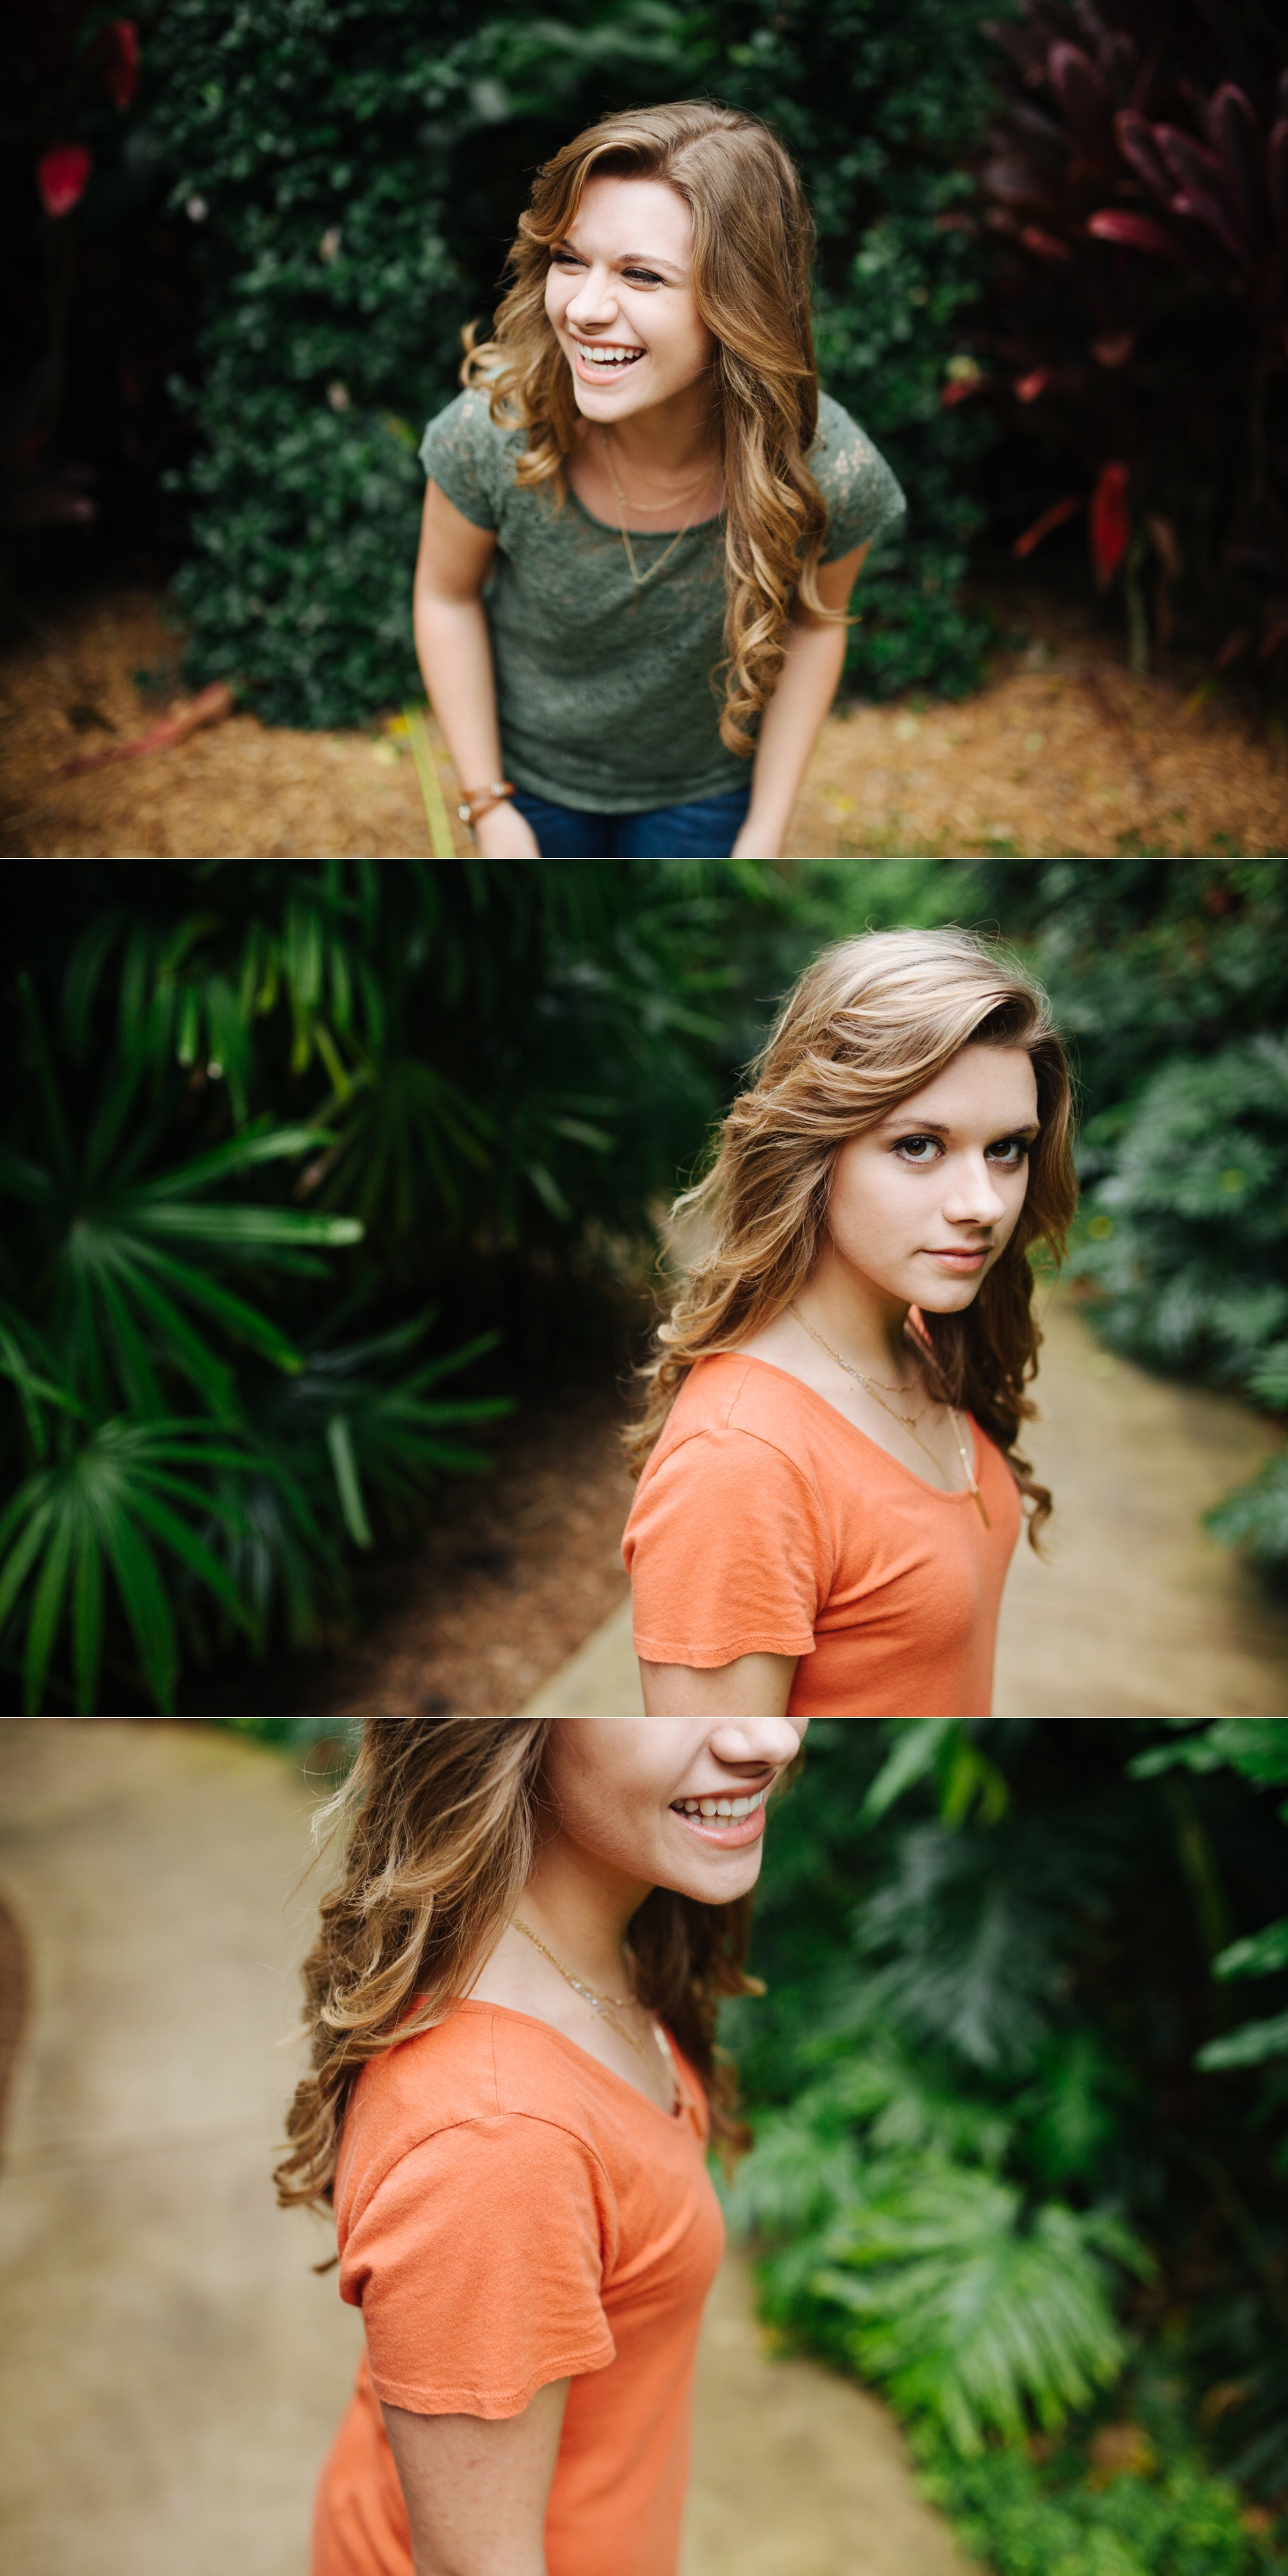 jake-and-katie-tampa-photographers-portraits-3